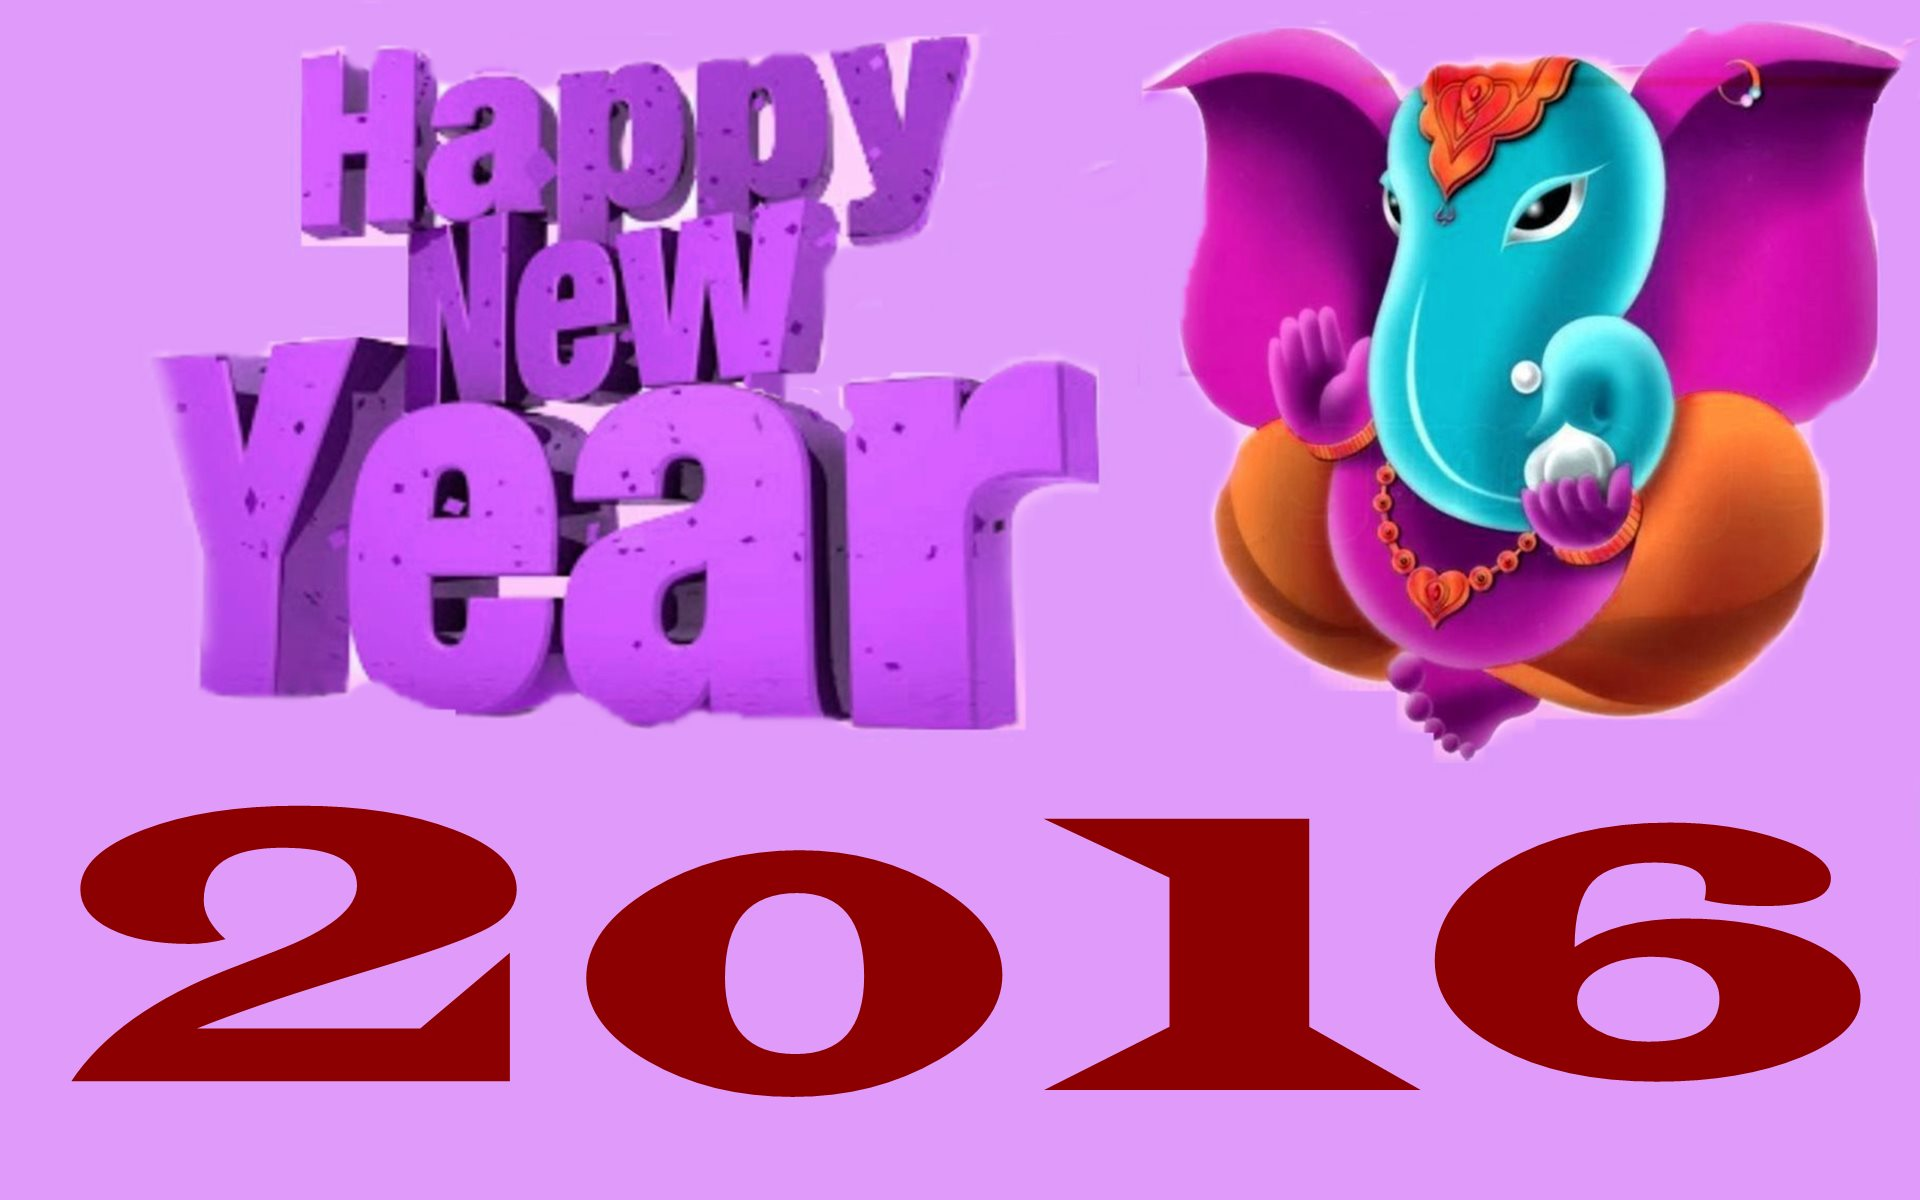 Happy New Year 2016 Latest HD Wallpapers : http://www.